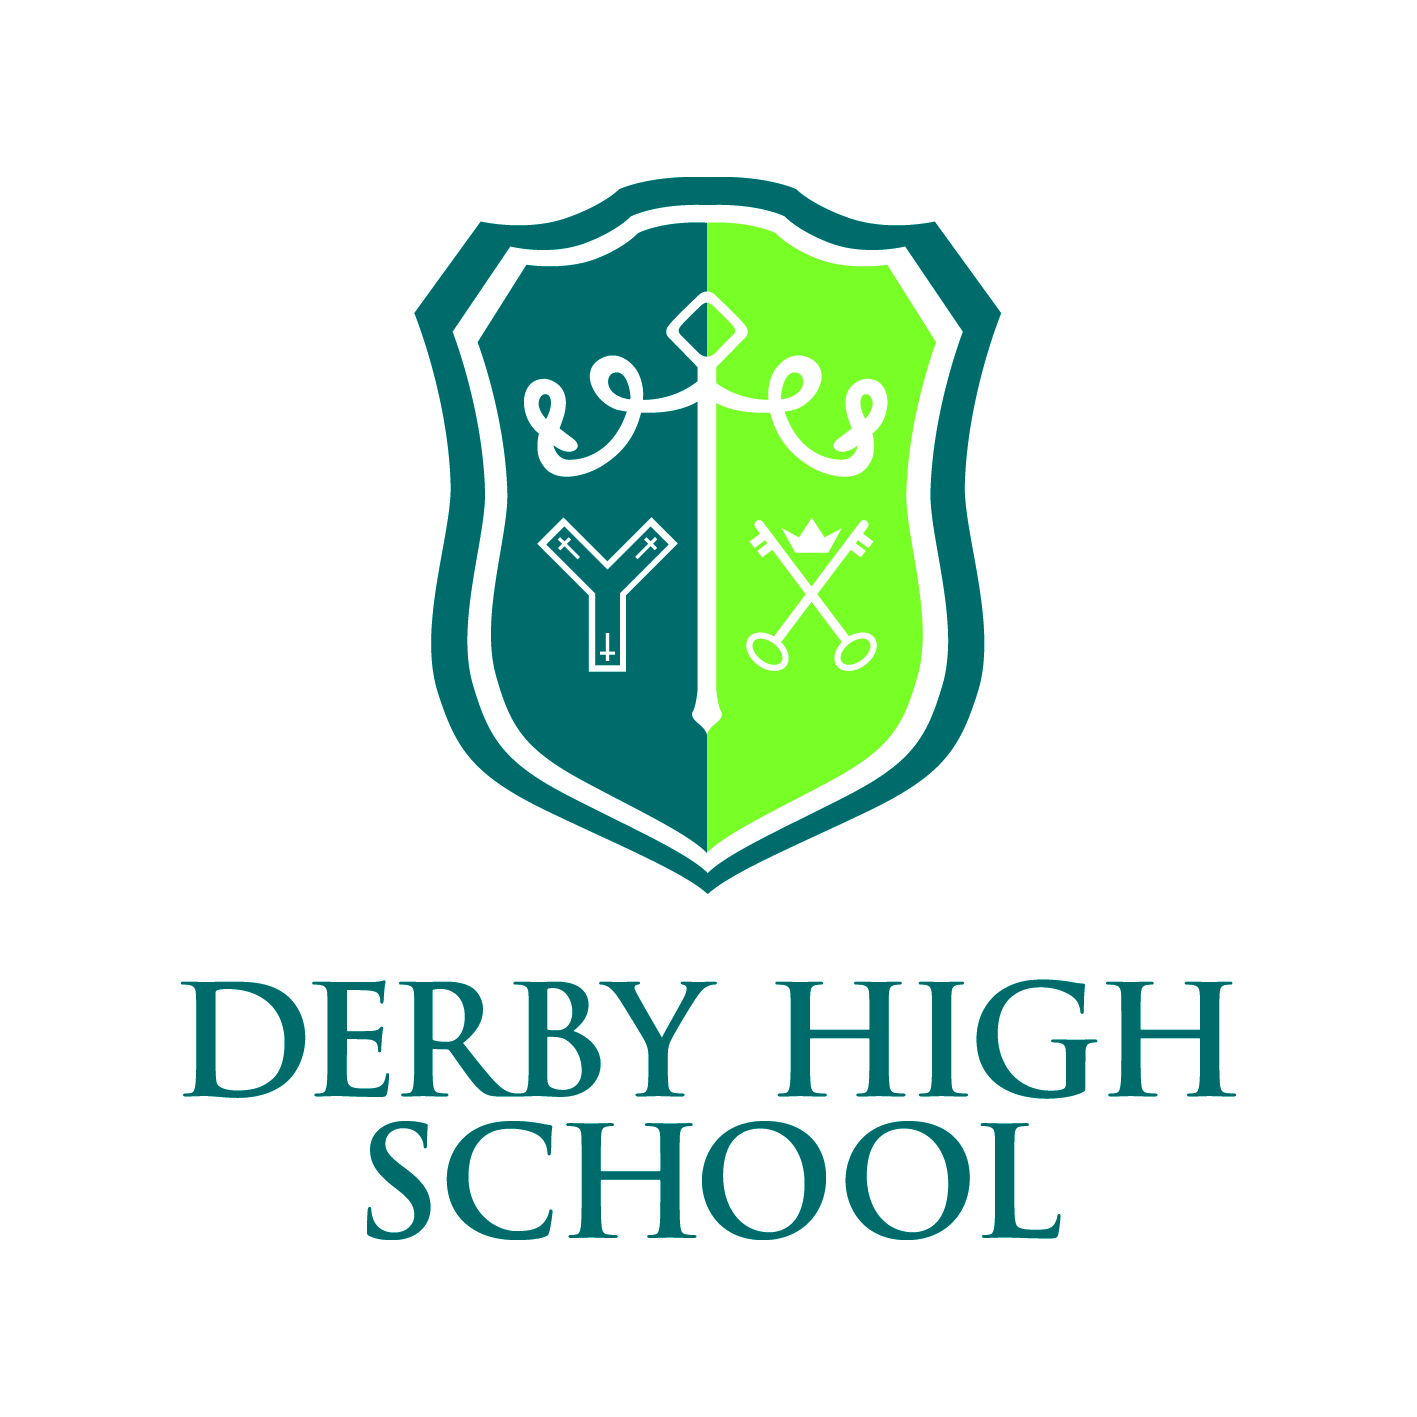 GSA Job Vacancy | Derby High - Head of Sixth Form Job Description Head Of Th Form on physical description form, job description button, job description presentation, project description form, job traveler example, job description list, job description model, job history form, job availability form, job description layout, job description construction, job references form, job review form, church volunteer position description form, police suspect description form, job map, job task form template, house description form, job search form, job description letter,